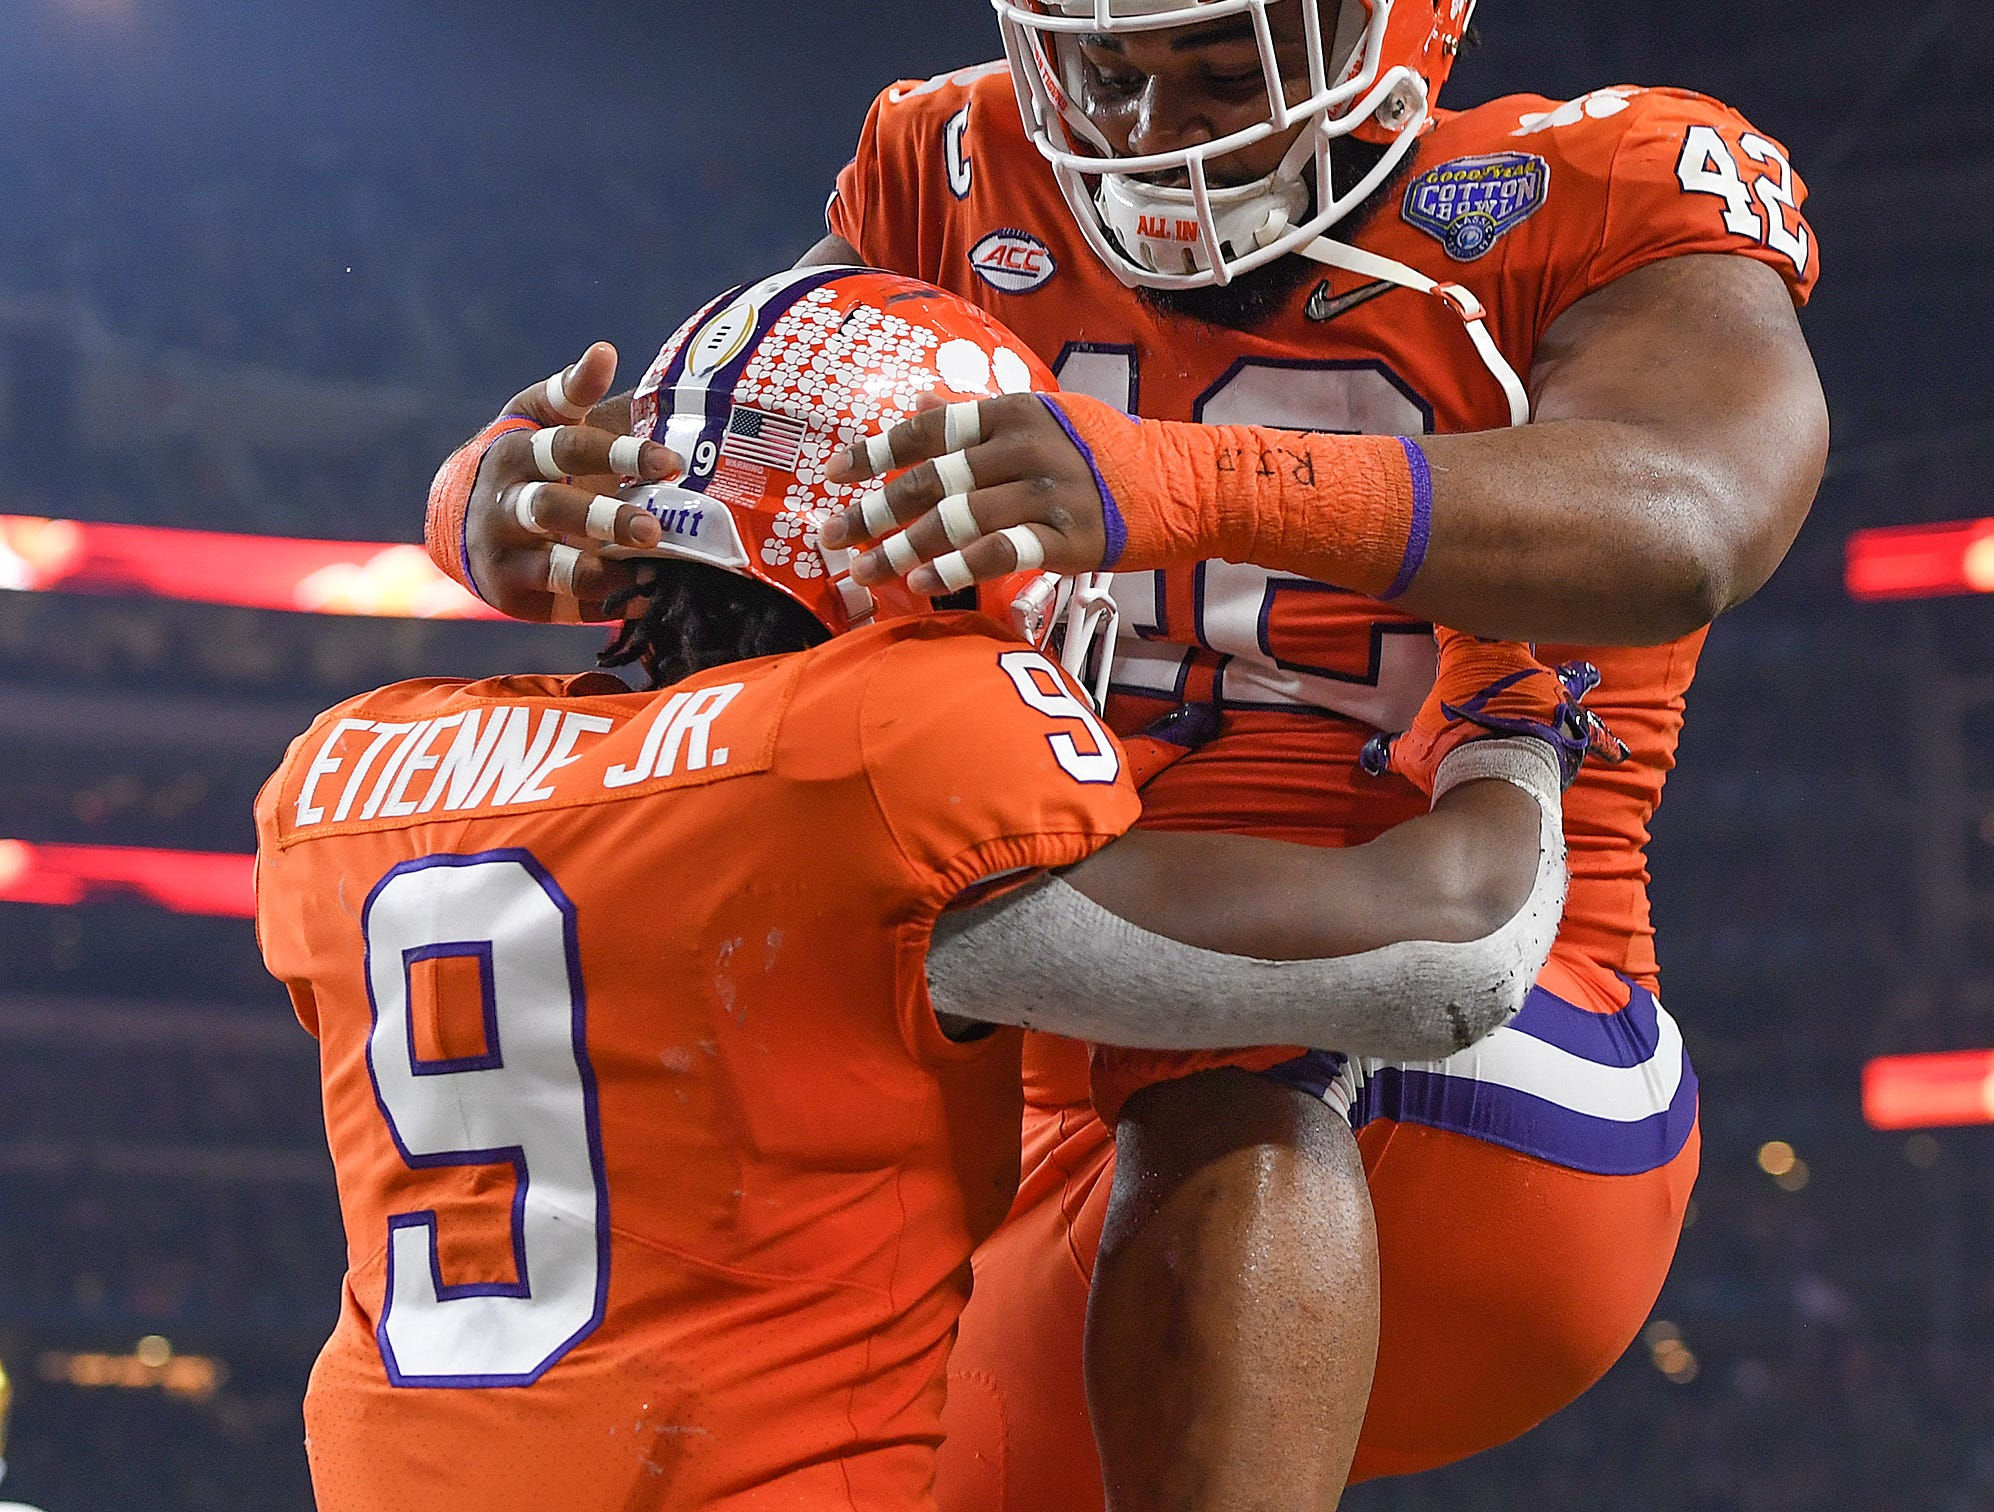 Clemson running back Travis Etienne (9) celebrates with defensive lineman Christian Wilkins (42) after scoring on a 62 yard TD carry against Notre Dame during the 3rd quarter of the Goodyear Cotton Bowl at AT&T stadium in Arlington, TX Saturday, December 29, 2018.